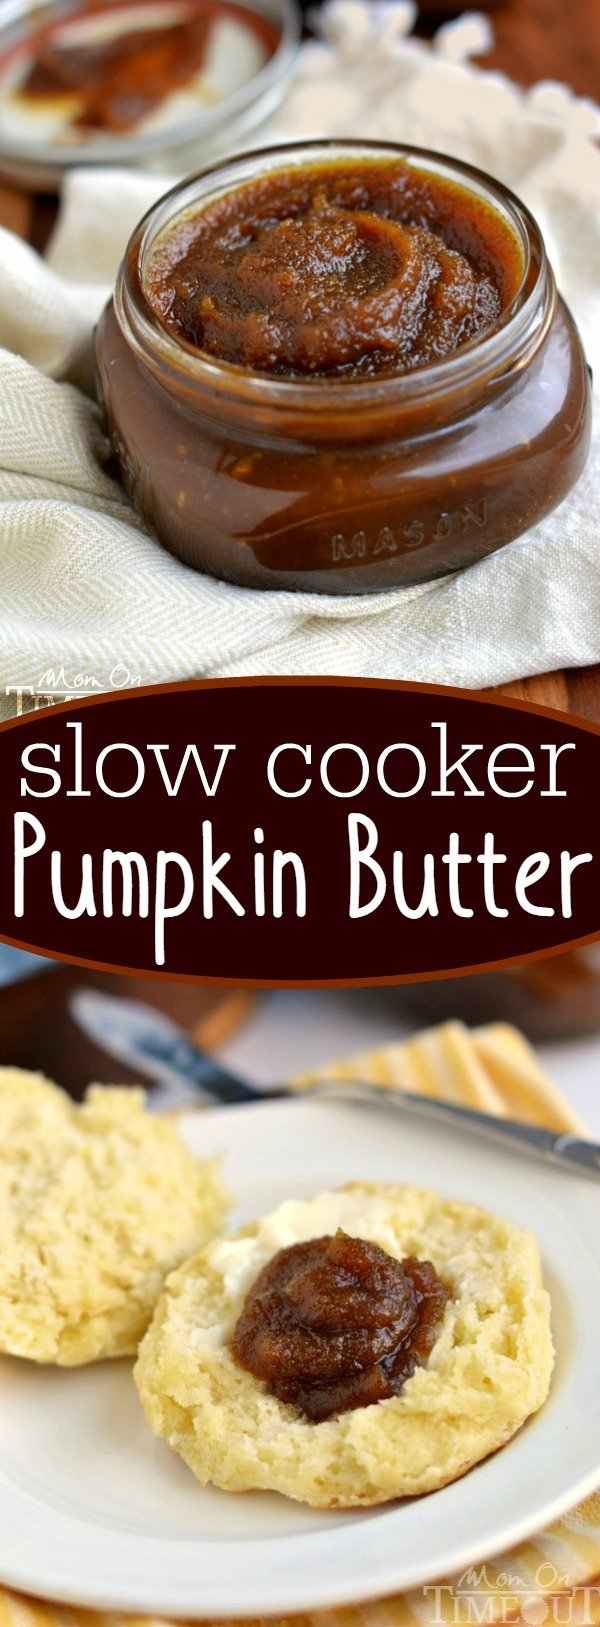 Slow Cooker Pumpkin Butter will rock your world! Buttery, sweet and totally decadent, this pumpkin butter is perfect on biscuits, scones or off of a spoon!